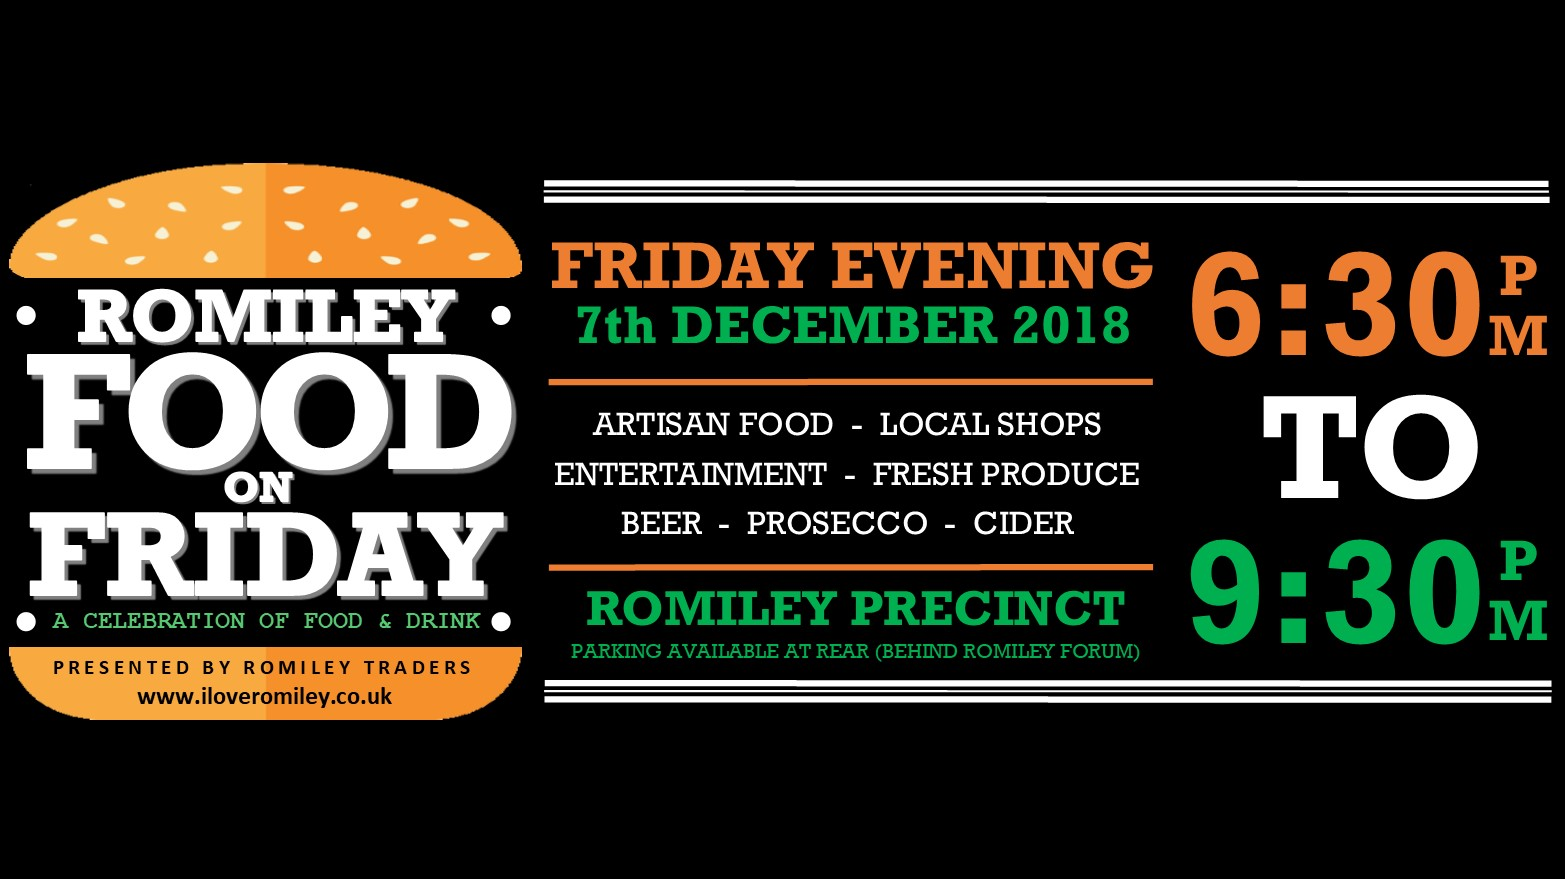 Romiley Festive Food On Friday – December 2018